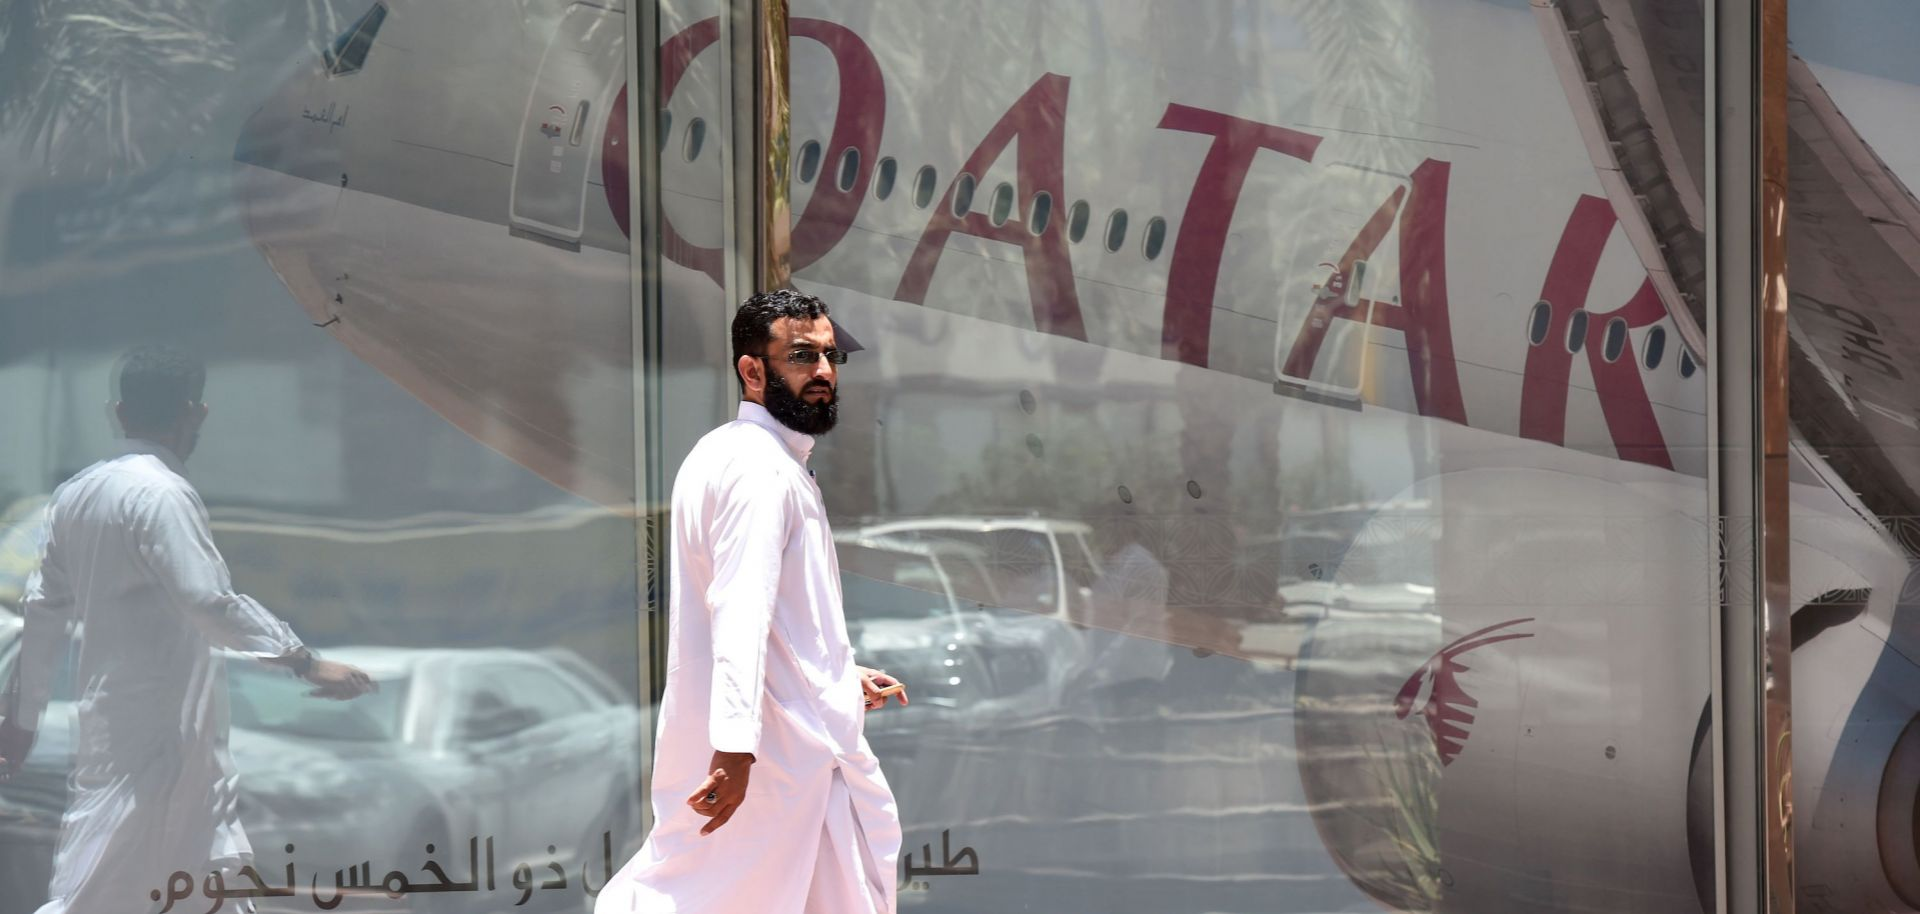 Long-standing tensions among members of the Gulf Cooperation Council that intensified over the past two weeks have culminated in a number of Arab governments, including Saudi Arabia and the United Arab Emirates, suspending relations with Qatar.